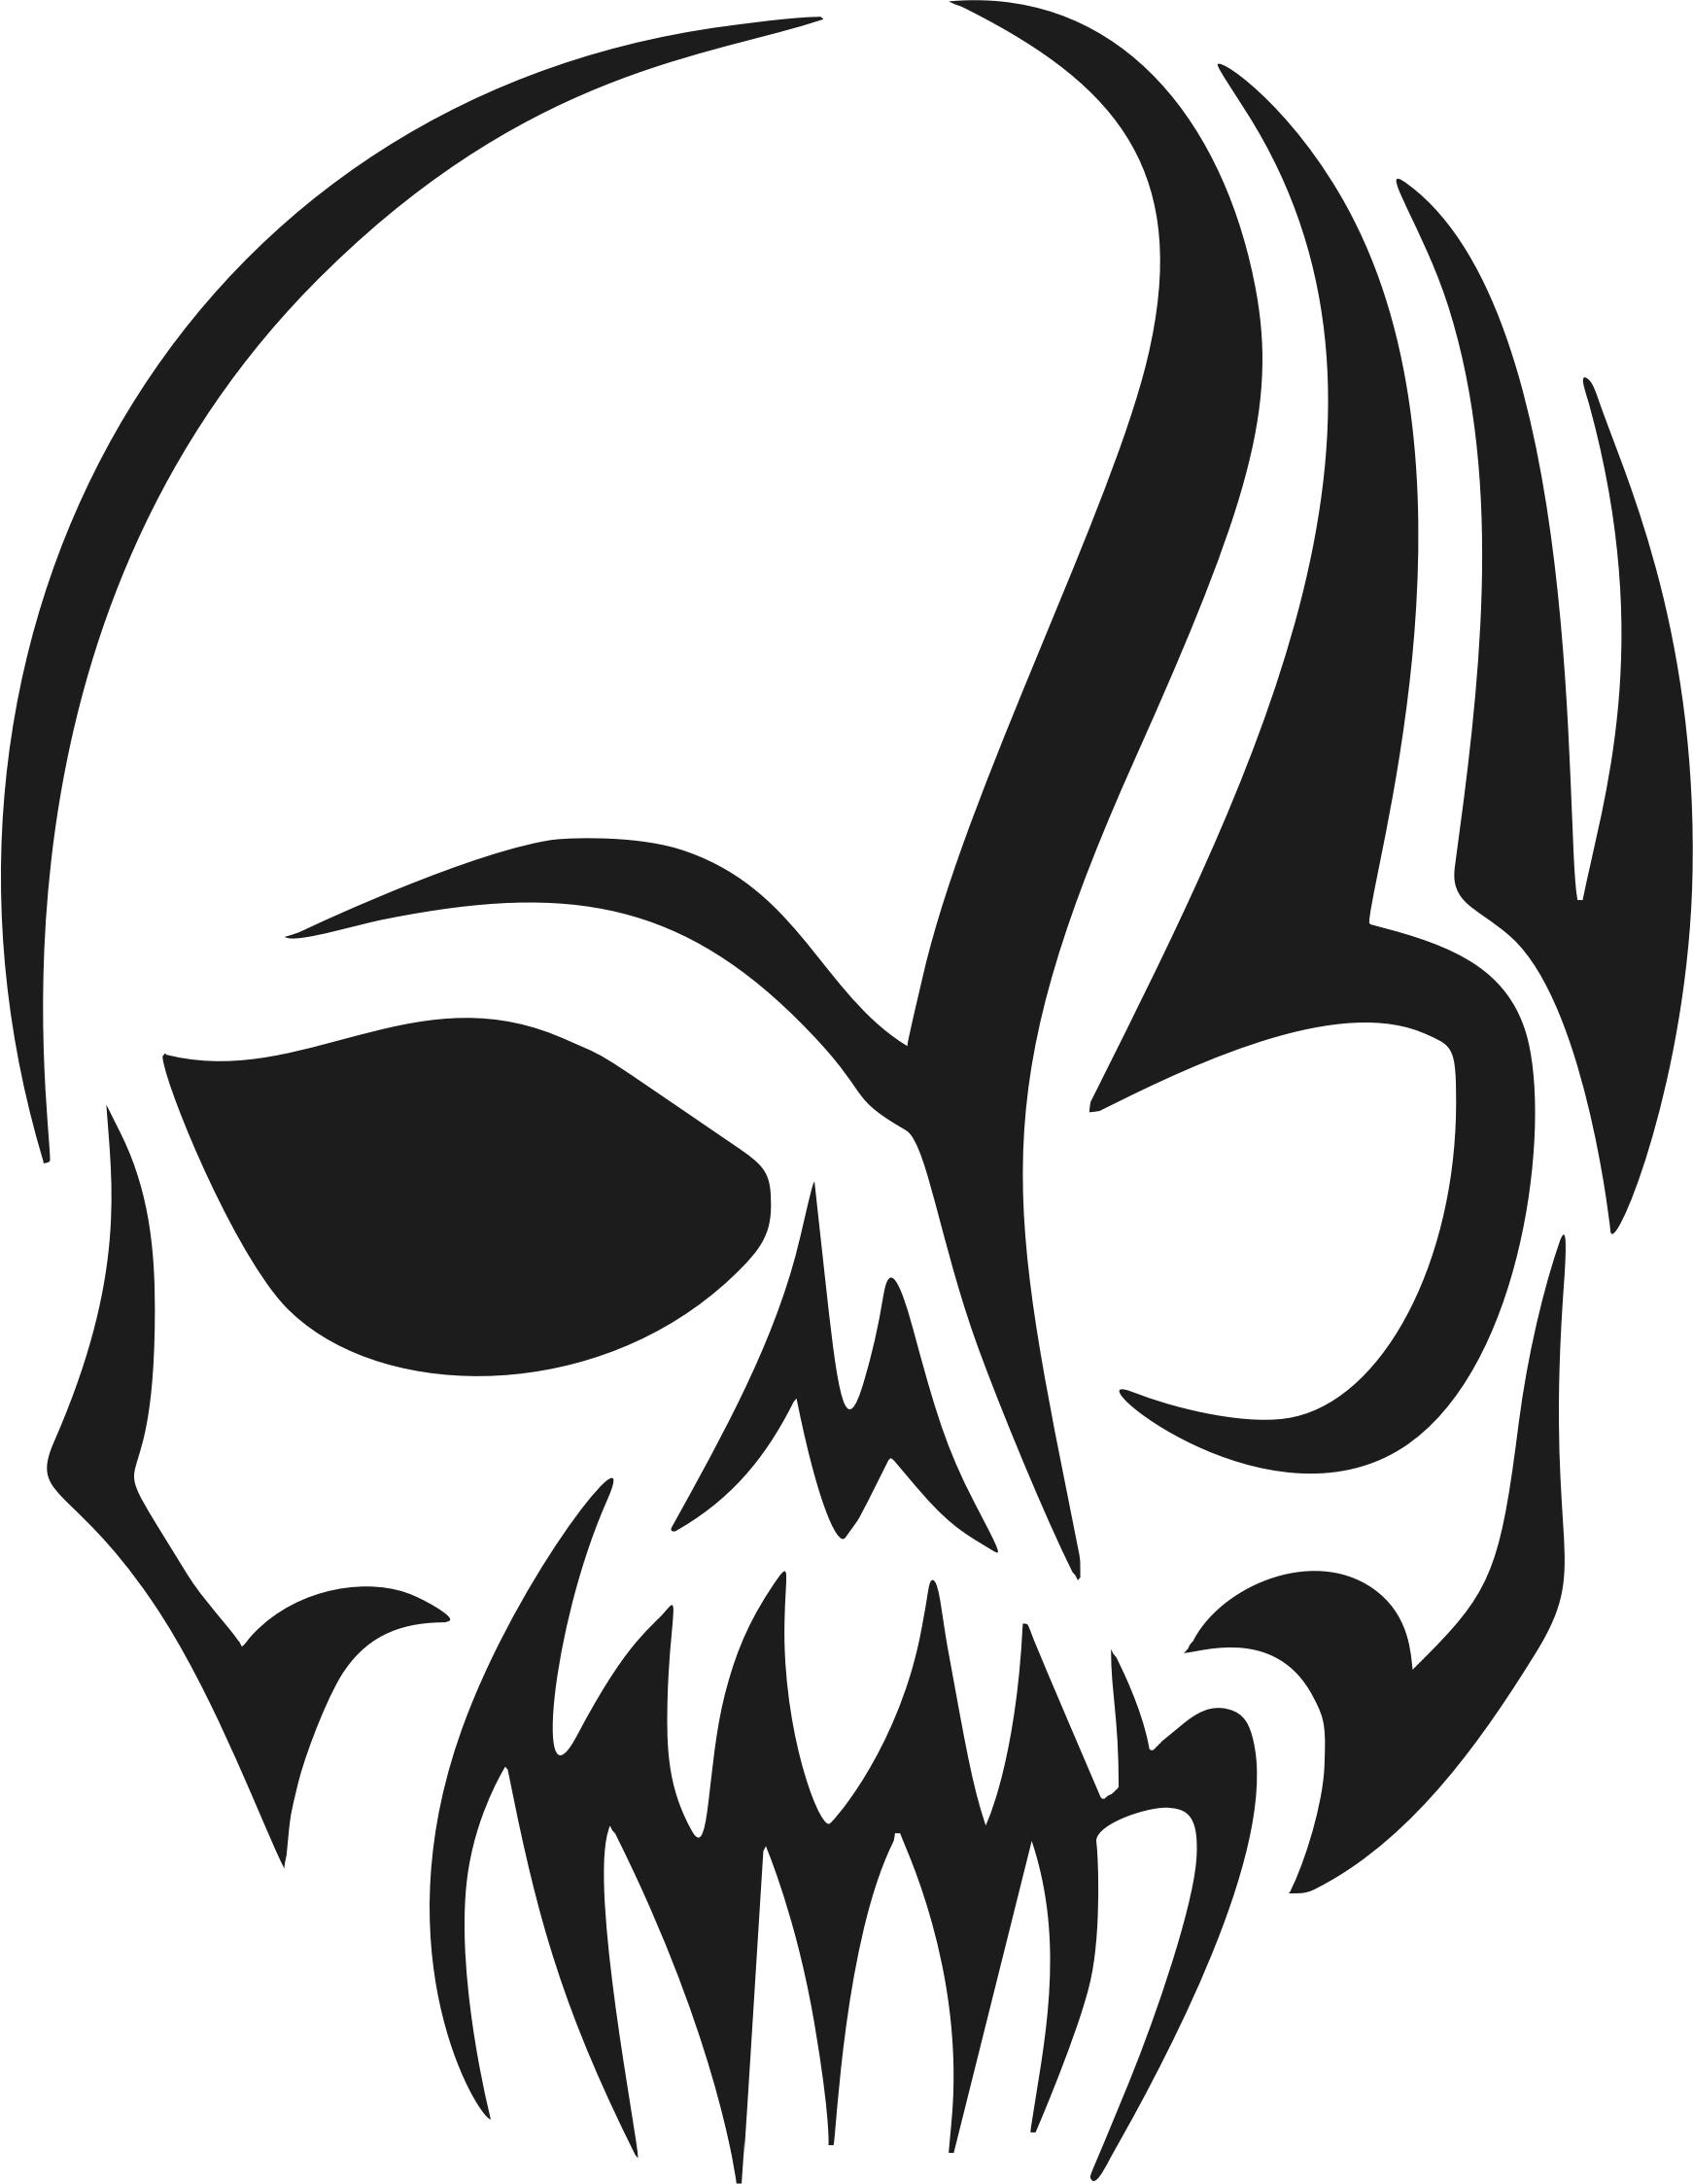 1742x2247 Free Skull Icons Png, Skull Images